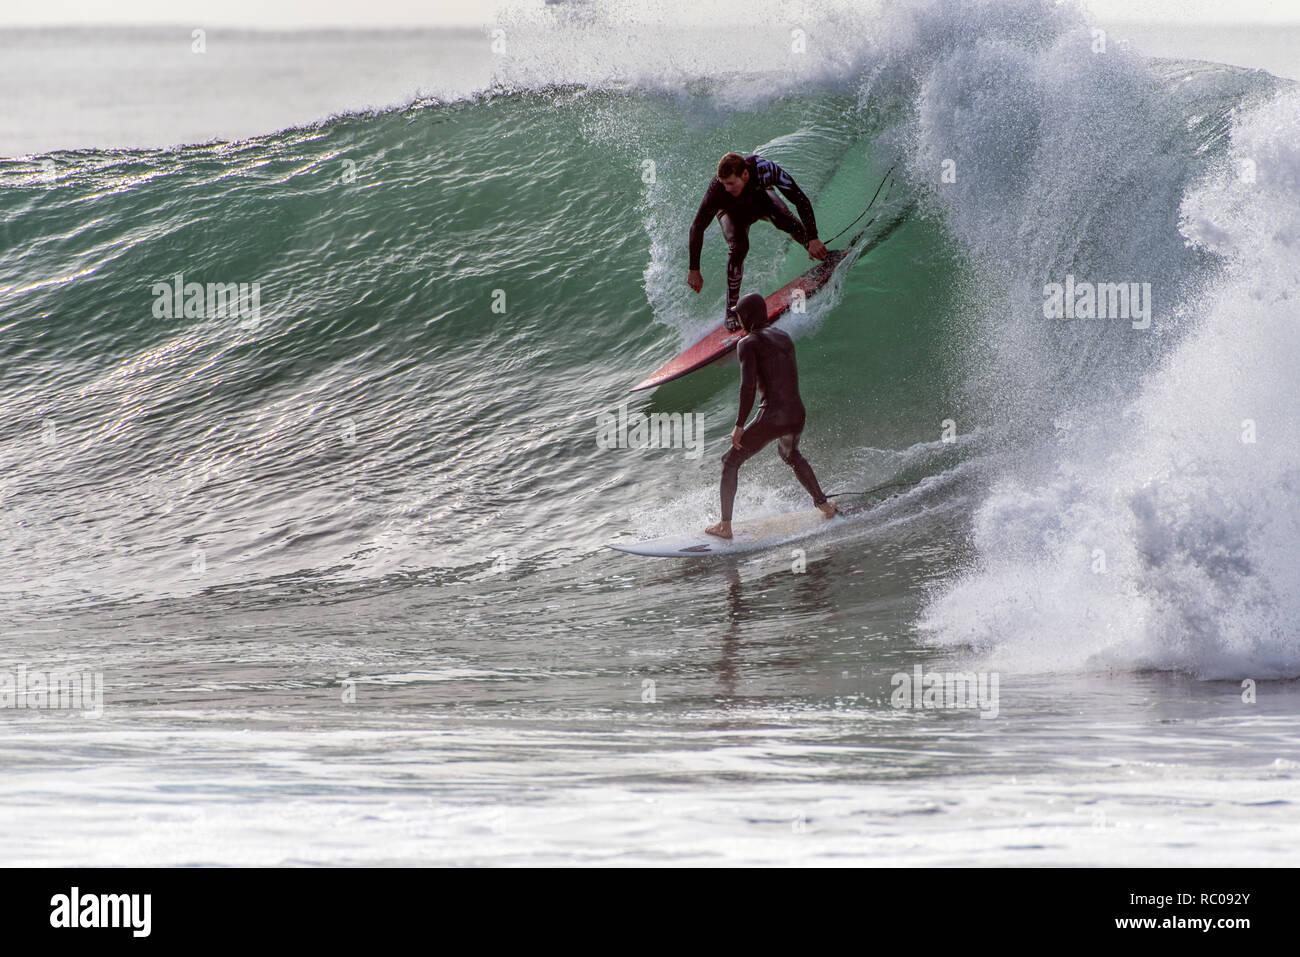 Crowded wave as one dropping in on another surfer's wave going right during winter swell in Santa Barbara, California, USA on January 9, 2019. - Stock Image